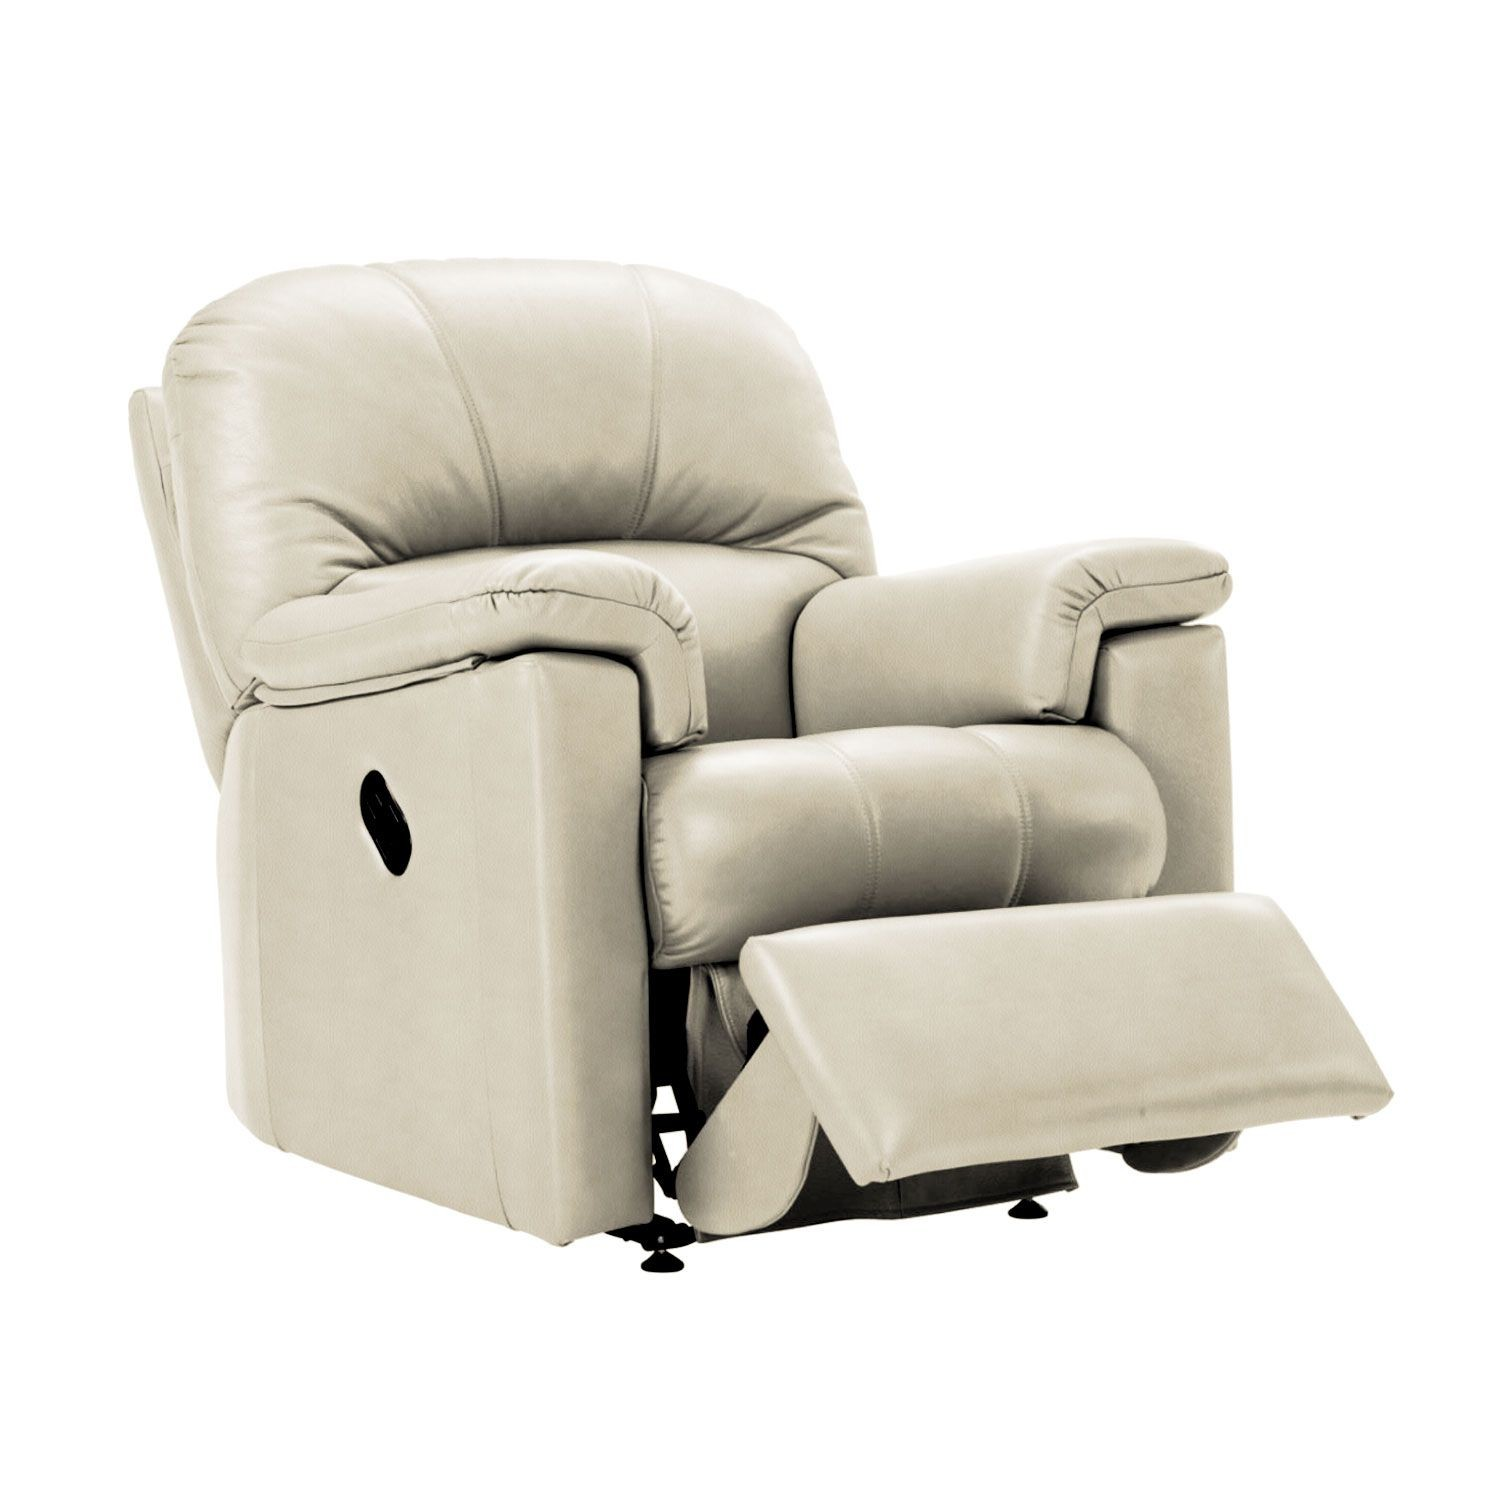 Excellent G Plan Chloe Manual Recliner Leather Armchair Small Bralicious Painted Fabric Chair Ideas Braliciousco